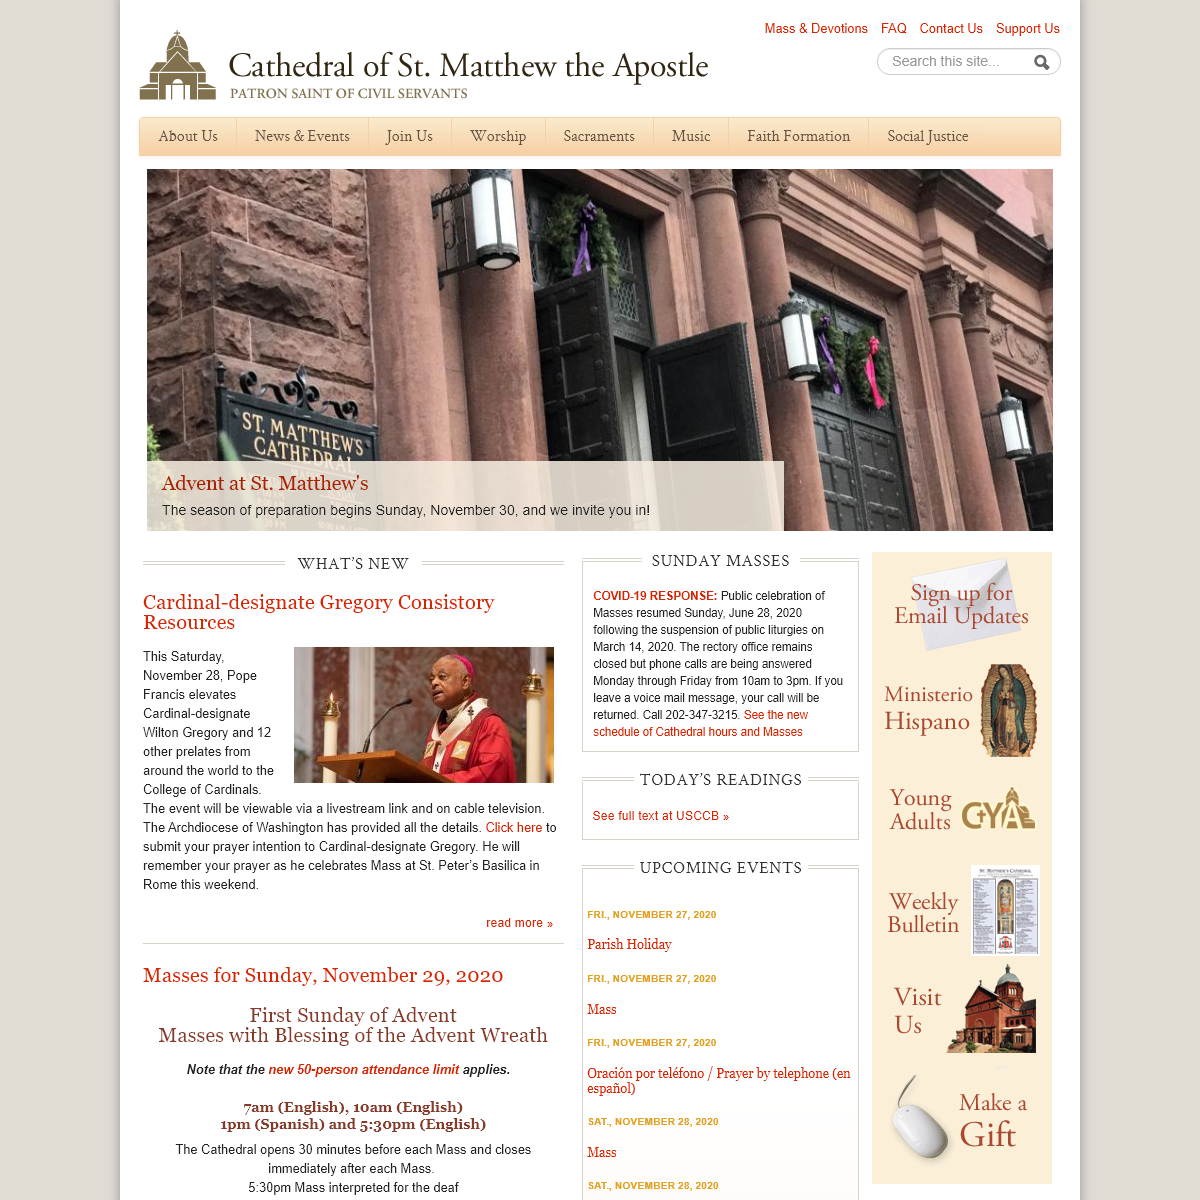 Cathedral of St. Matthew the Apostle in Washington - Downtown Catholic parish and seat of the Archbishop of Washington, D.C.